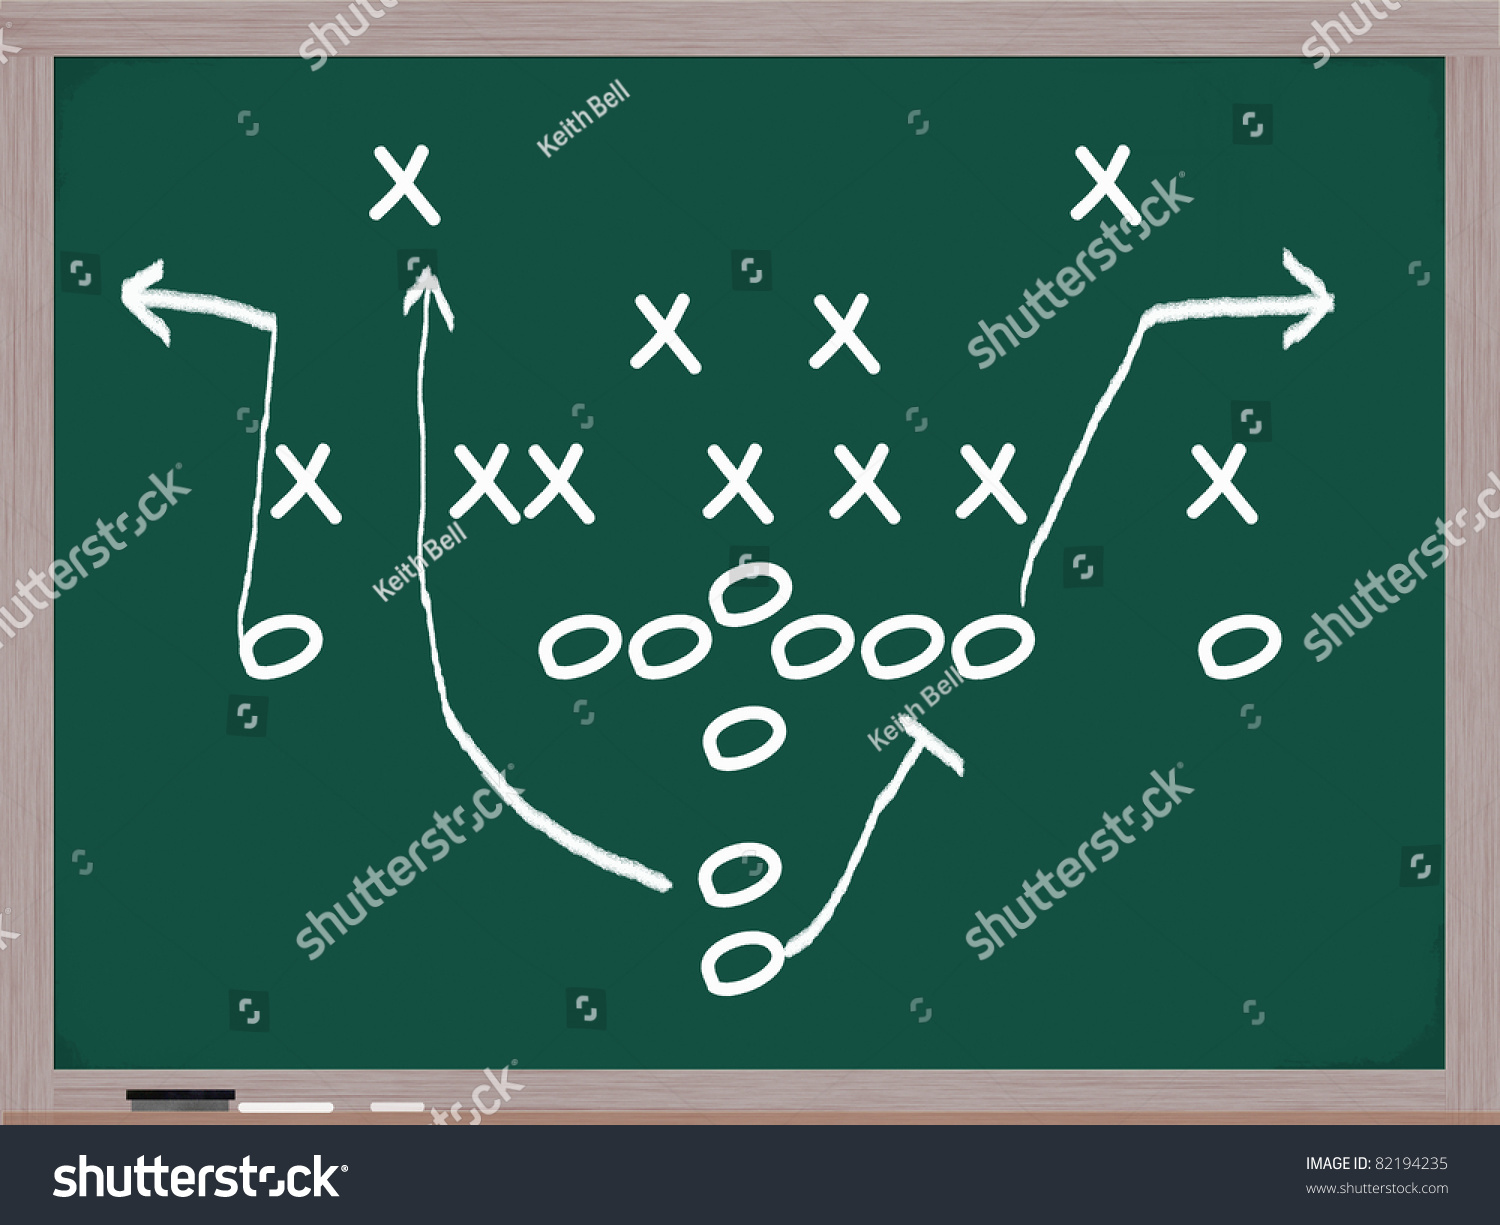 a football play diagram on a chalkboard in white chalk showing the    save to a lightbox